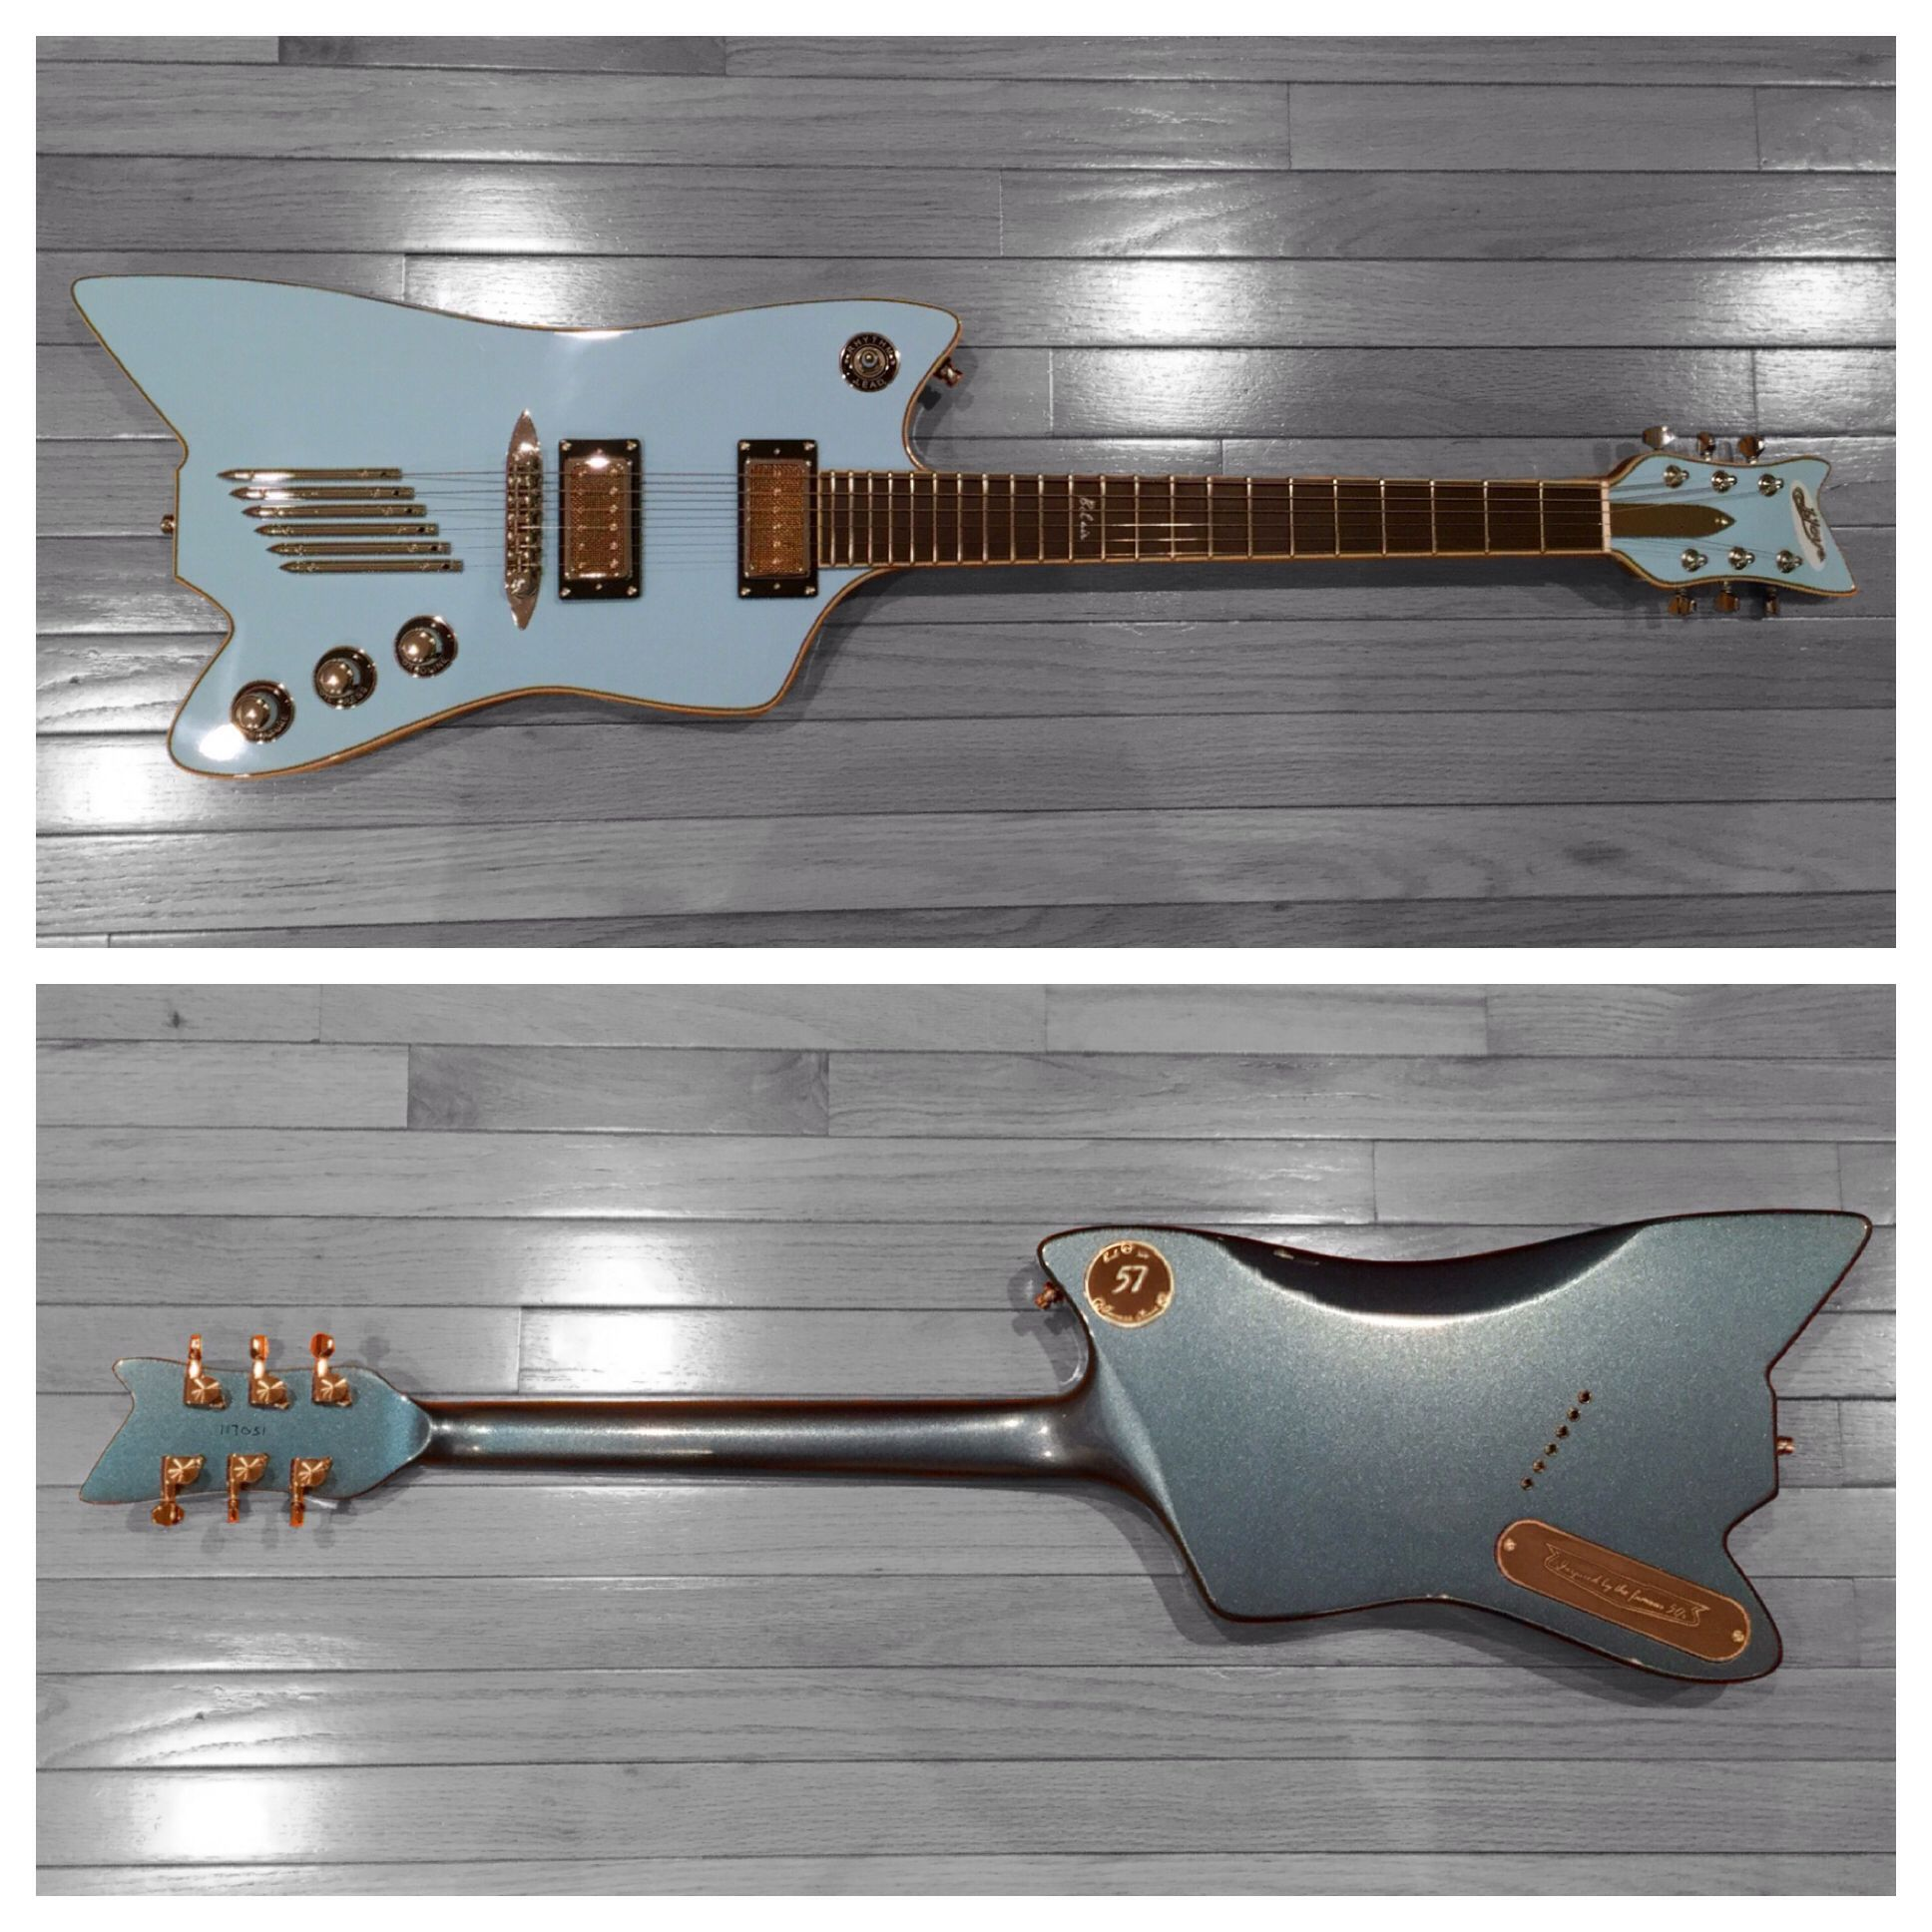 Eastwood Guitars Bel Air J Joye In Skyline Blue An Inspiration